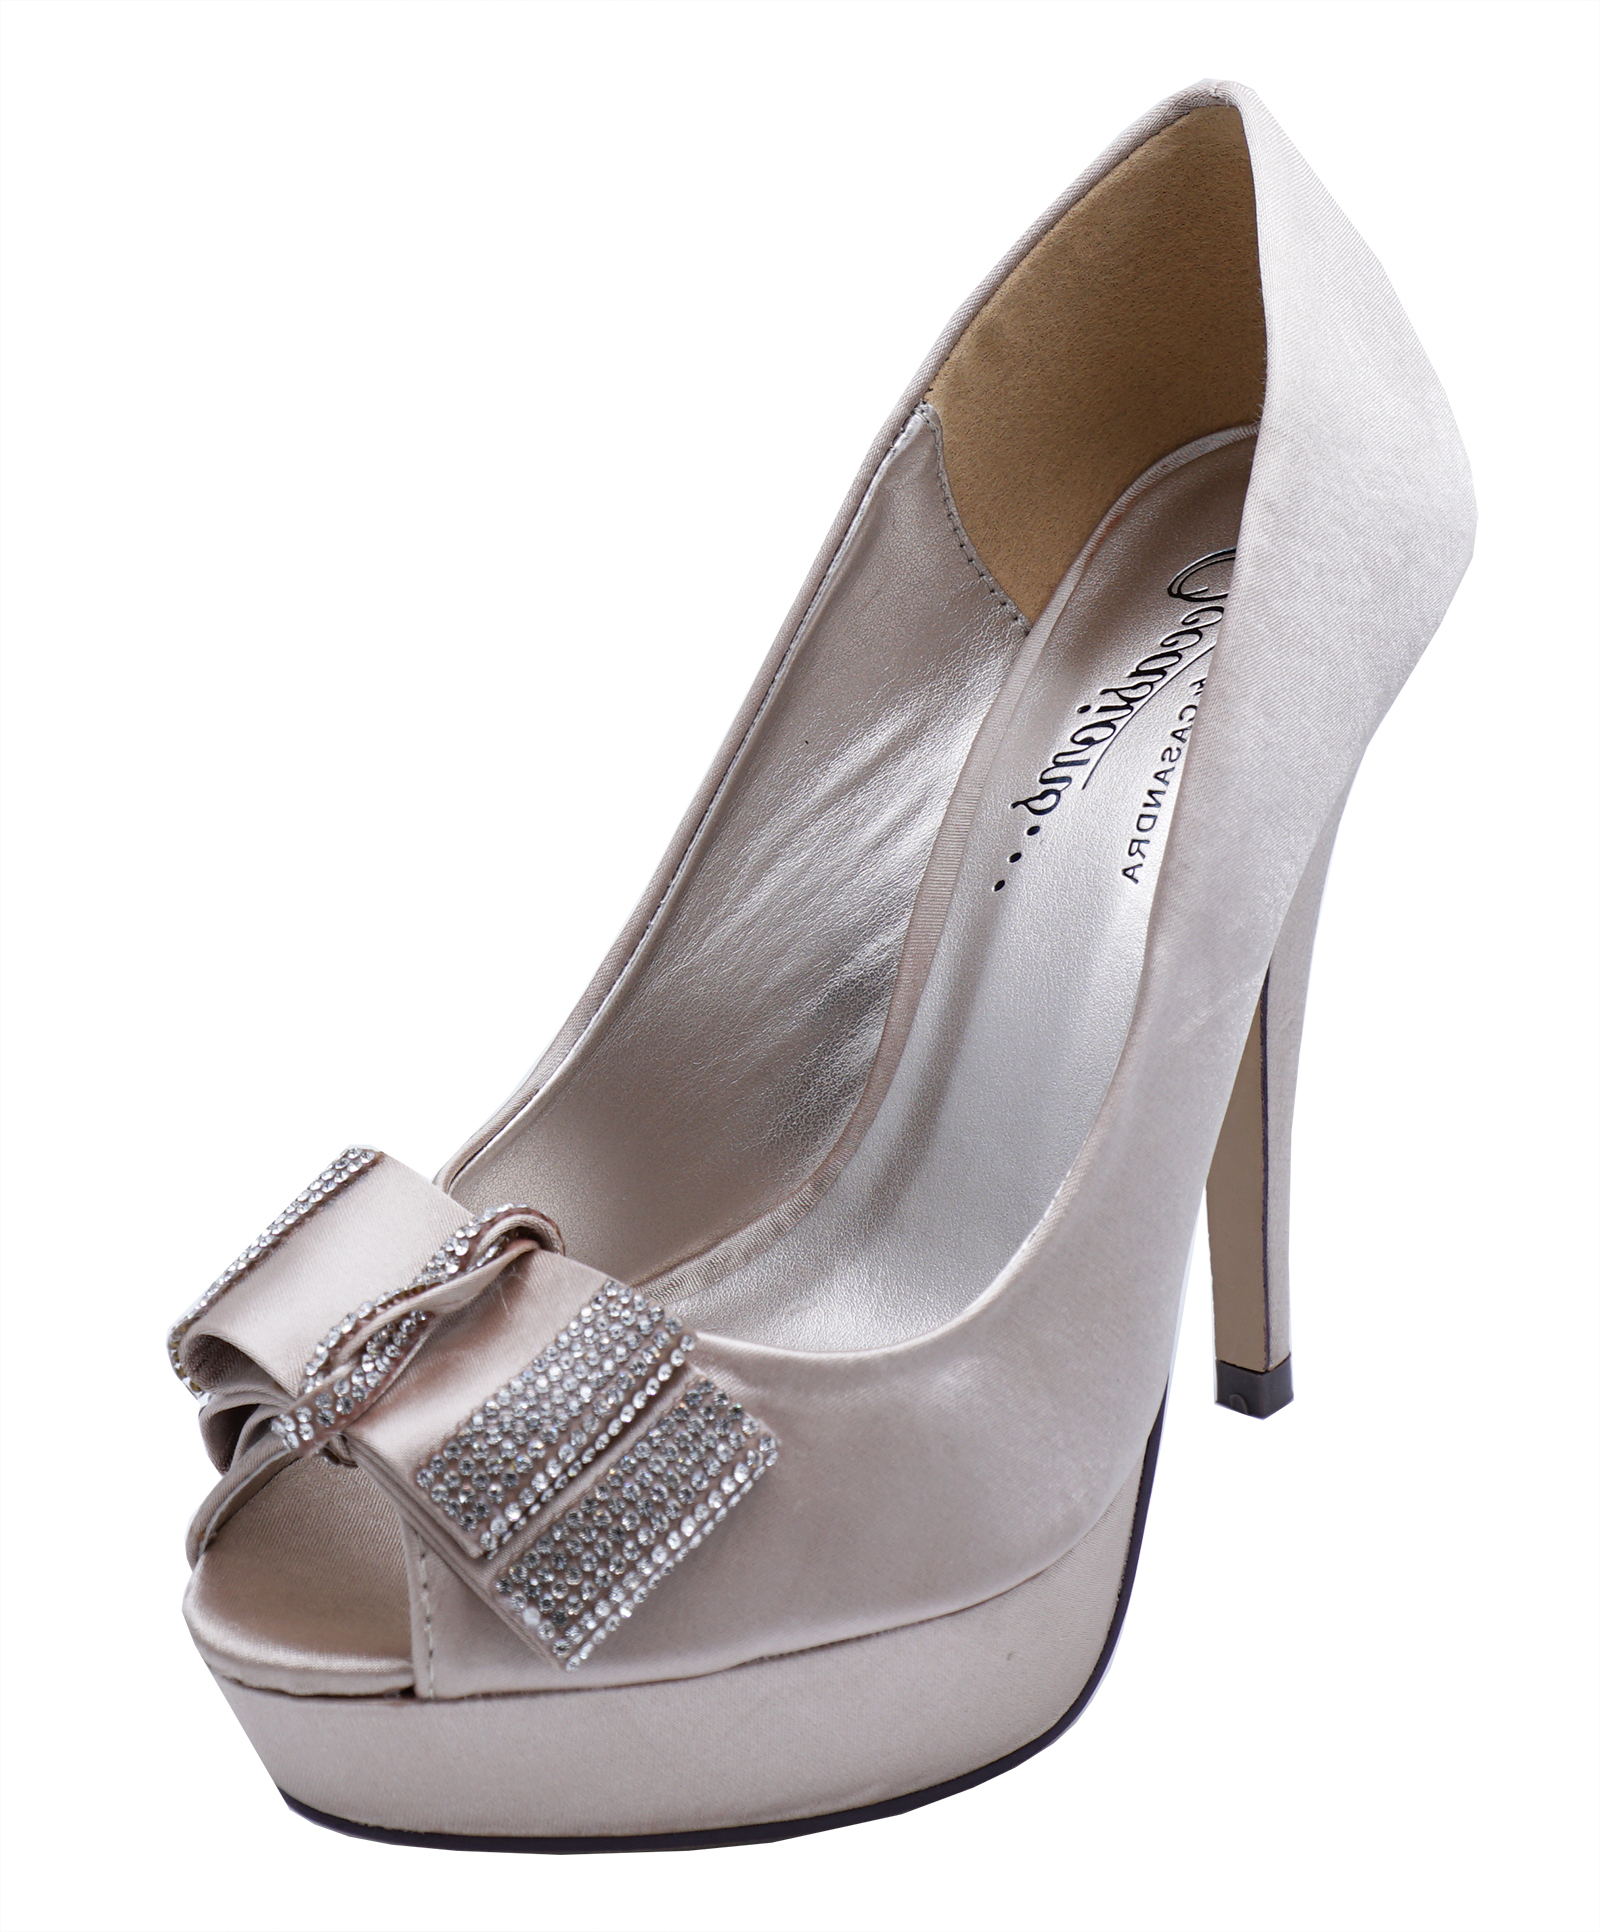 LADIES PINK SLIP-ON SATIN PEEP-TOE PARTY BOW EVENING PROM COURT SHOES SIZE 3-8